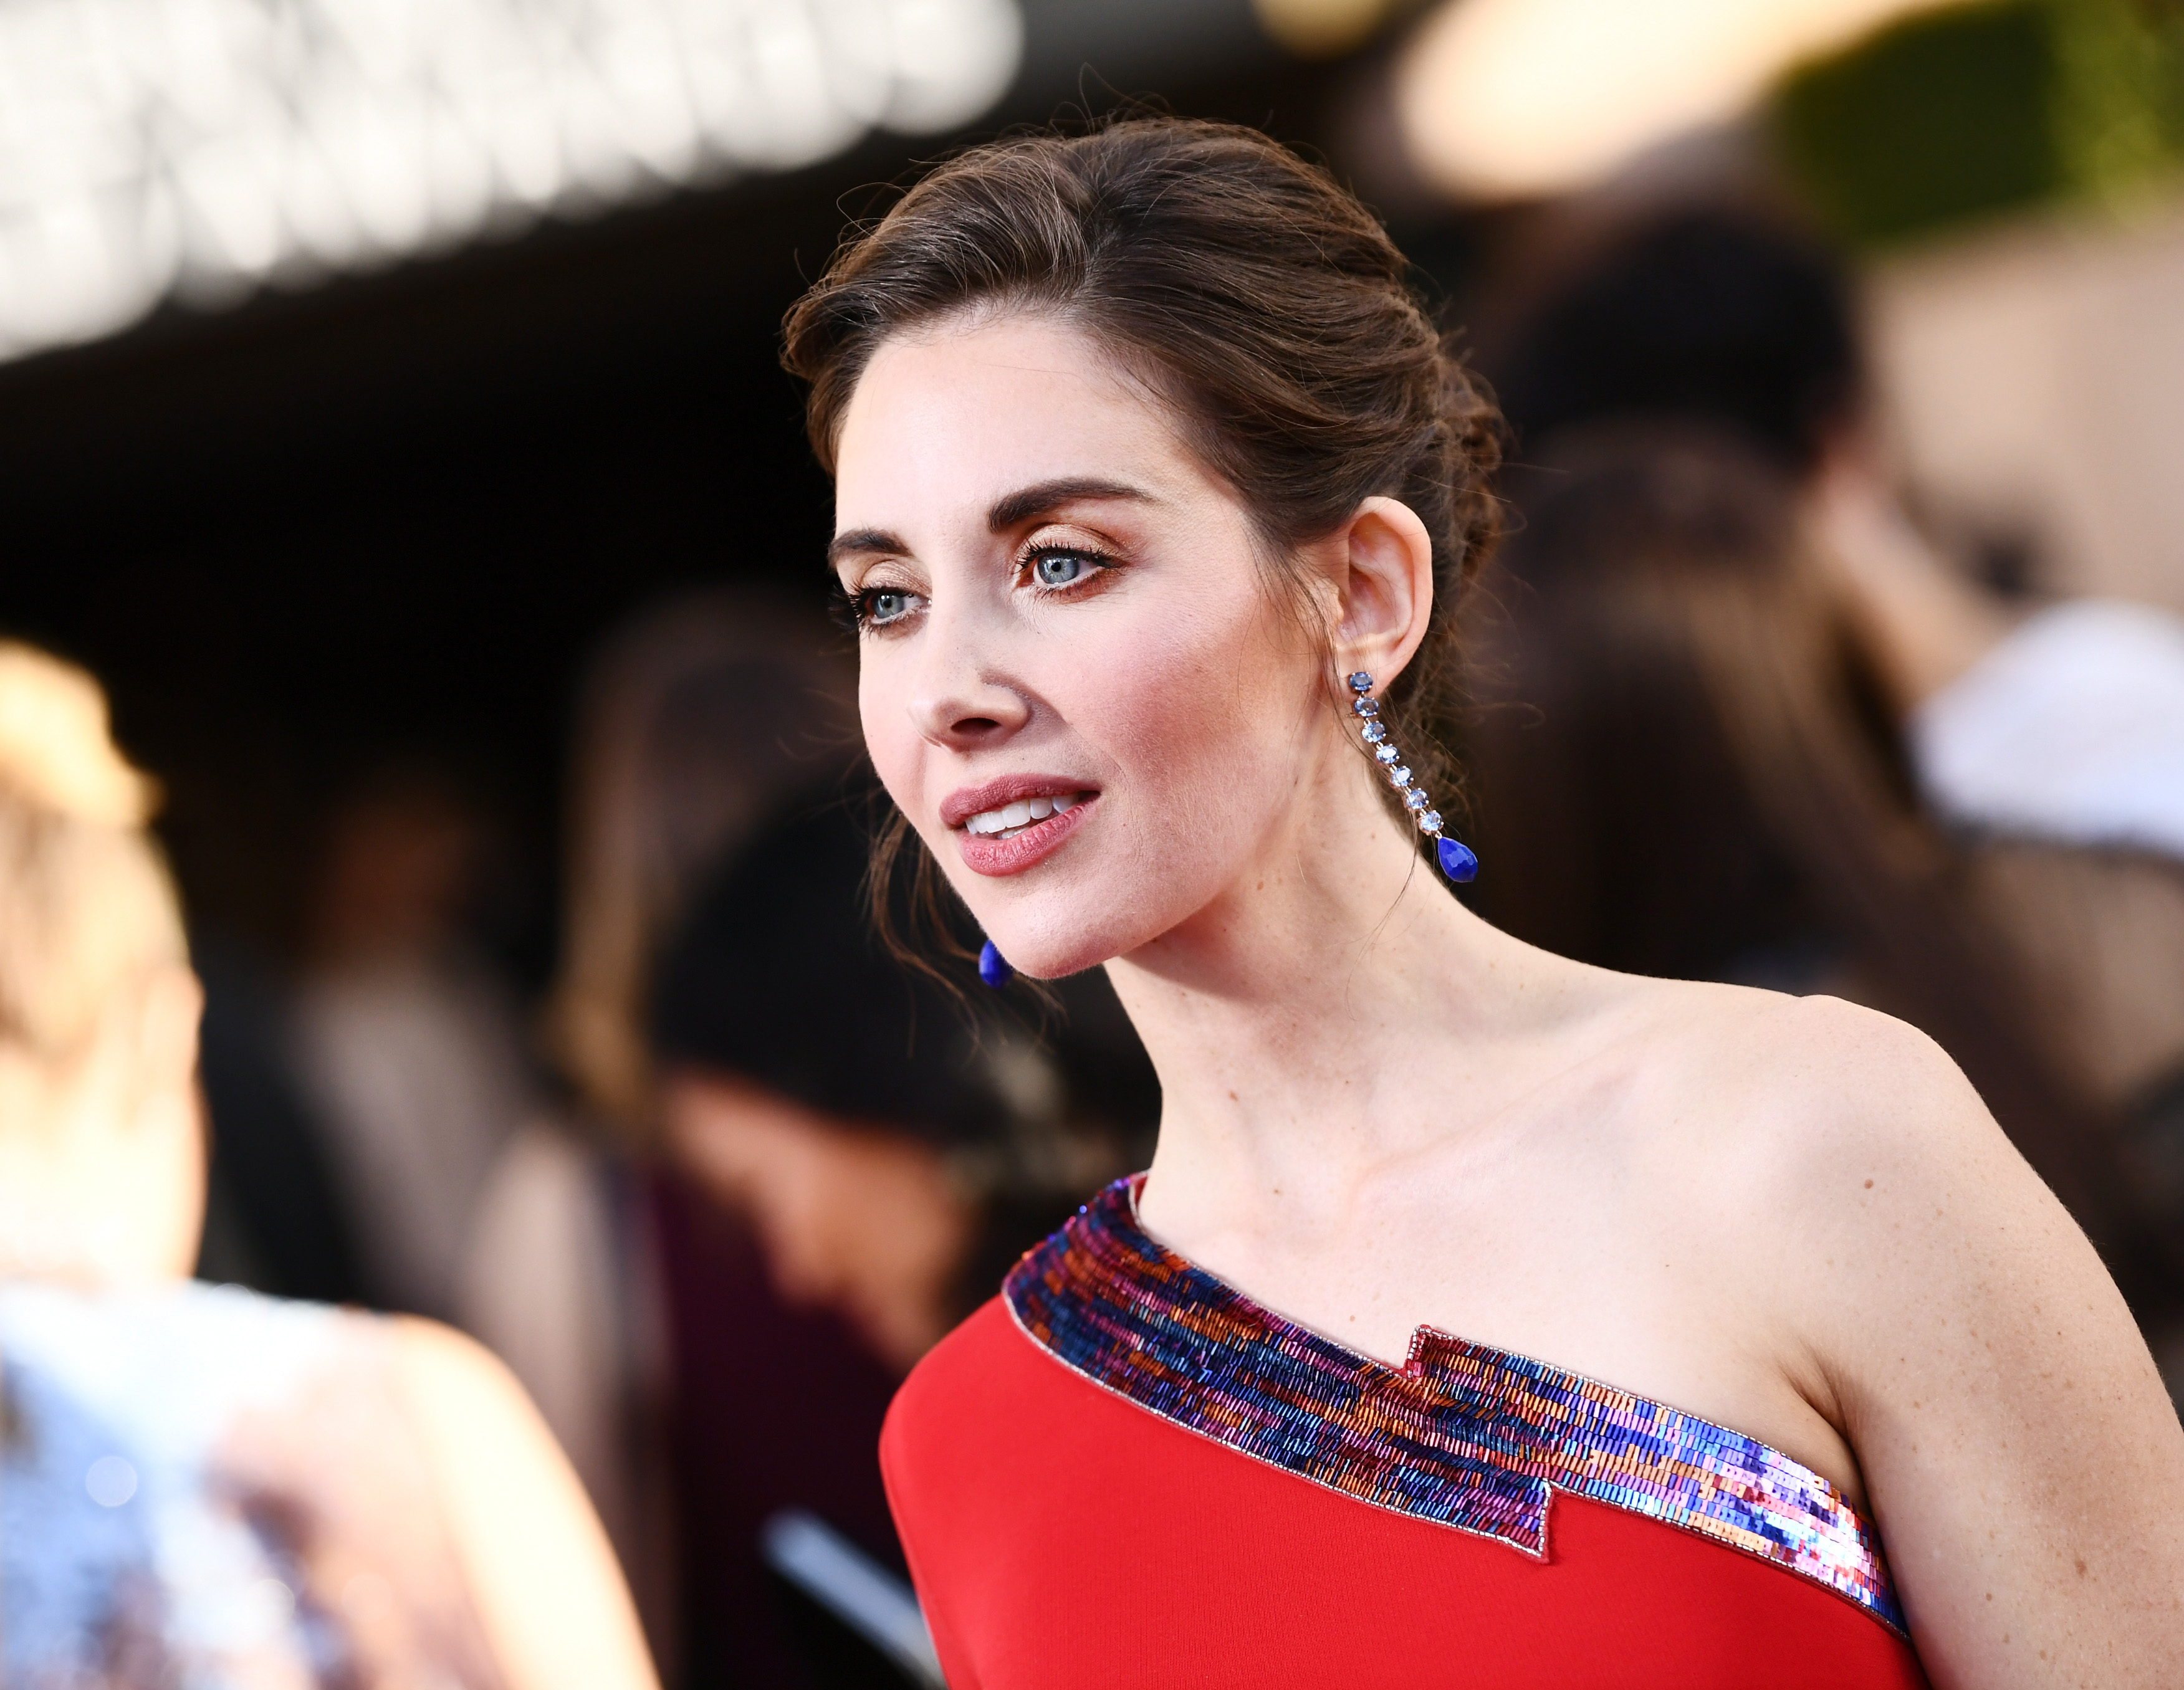 Actor Alison Brie attends the 24th Annual Screen Actors Guild Awards at The Shrine Auditorium on January 21, 2018 in Los Angeles, California.